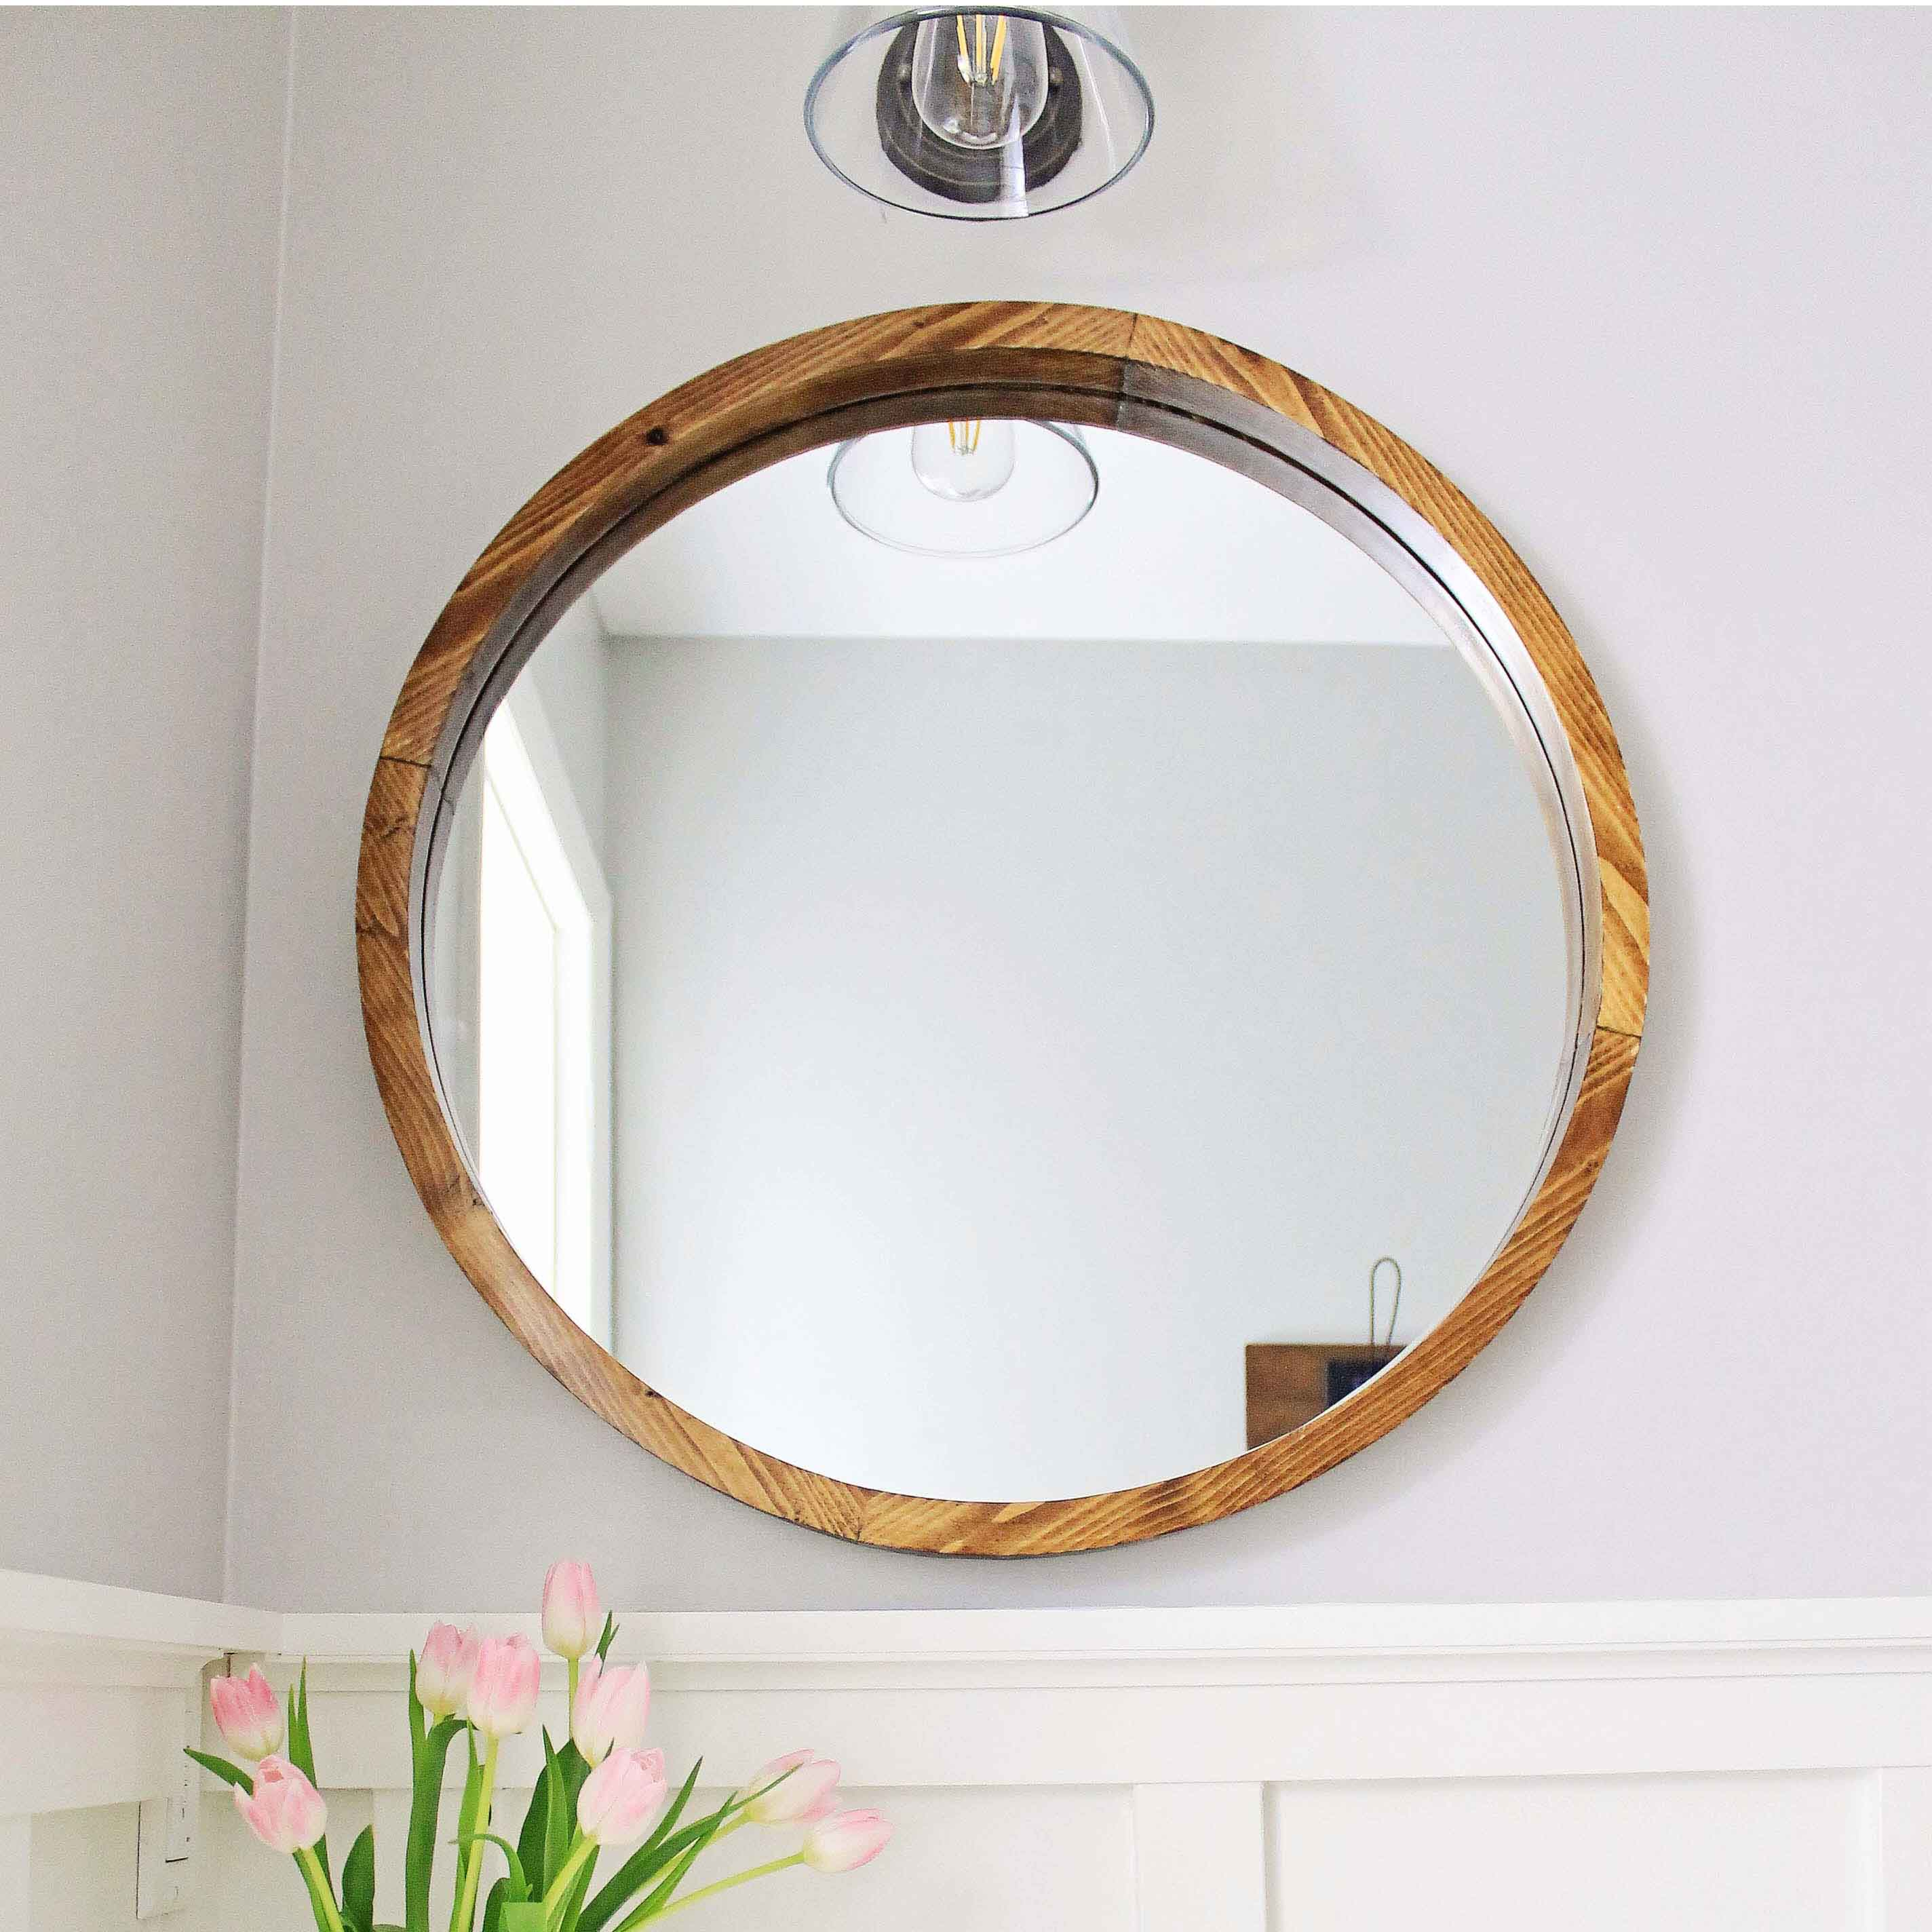 Round wood mirror diy angela marie made for Round mirror